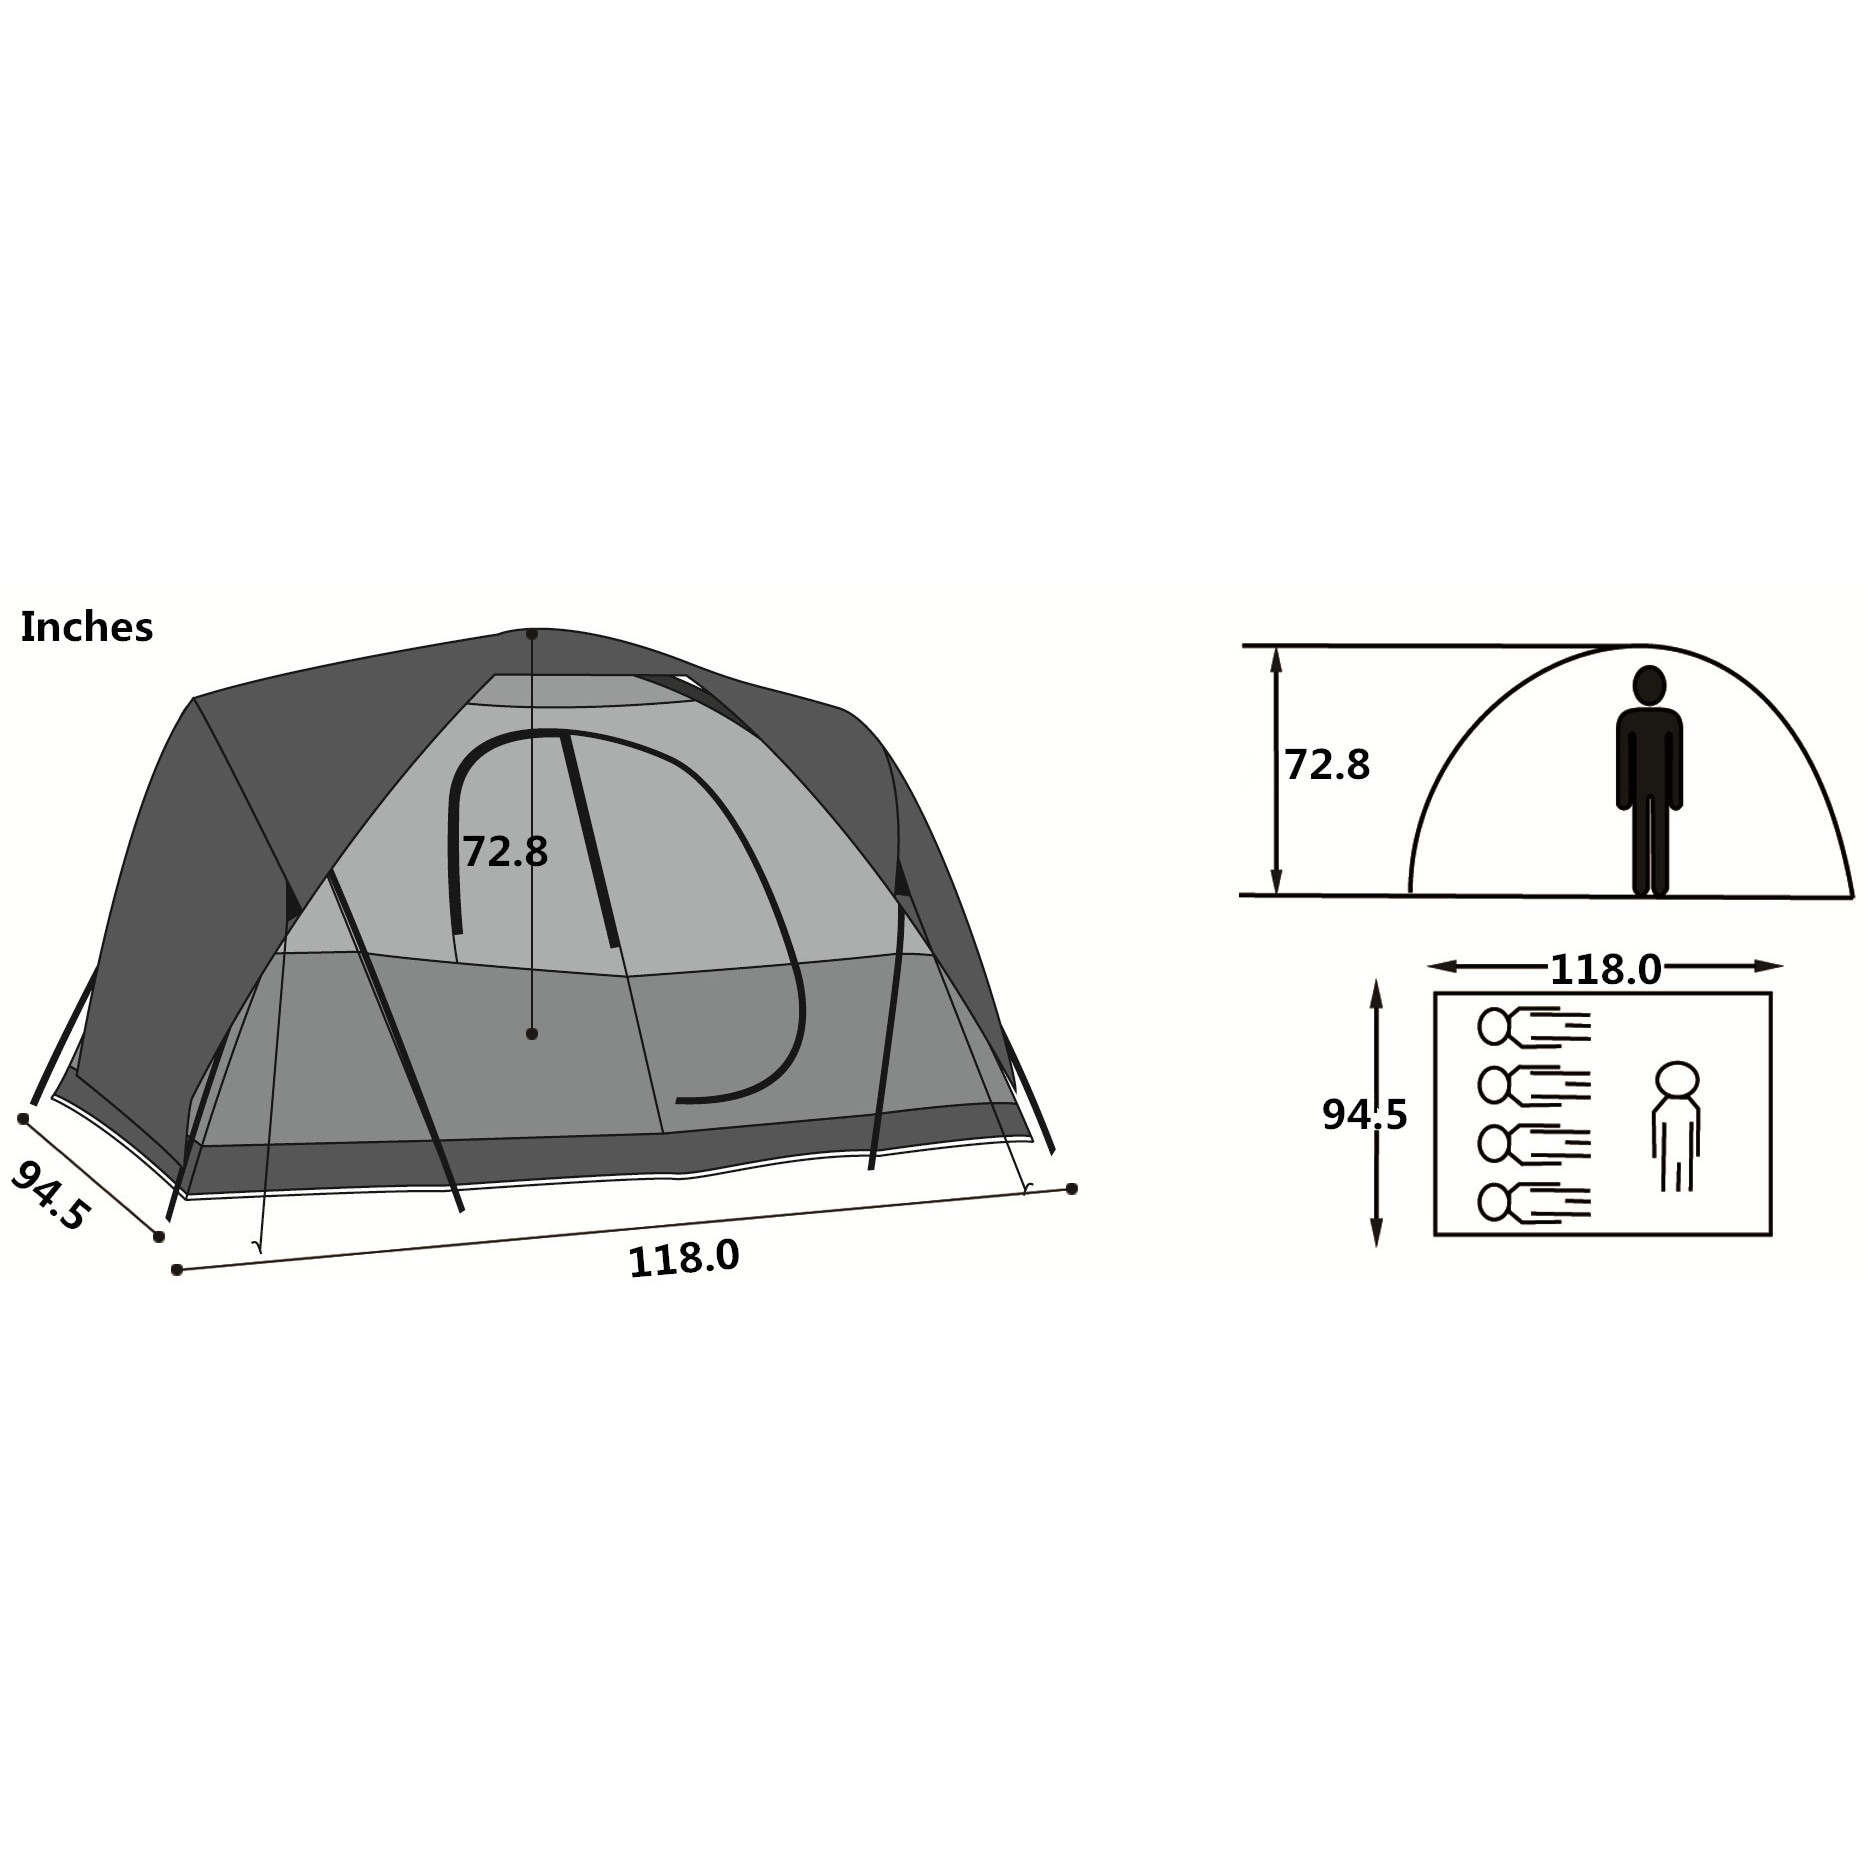 Semoo Waterproof 5-Person Family C&ing/ Travelling Tent with Compression Bag - Free Shipping Today - Overstock.com - 18130780  sc 1 st  Overstock & Semoo Waterproof 5-Person Family Camping/ Travelling Tent with ...